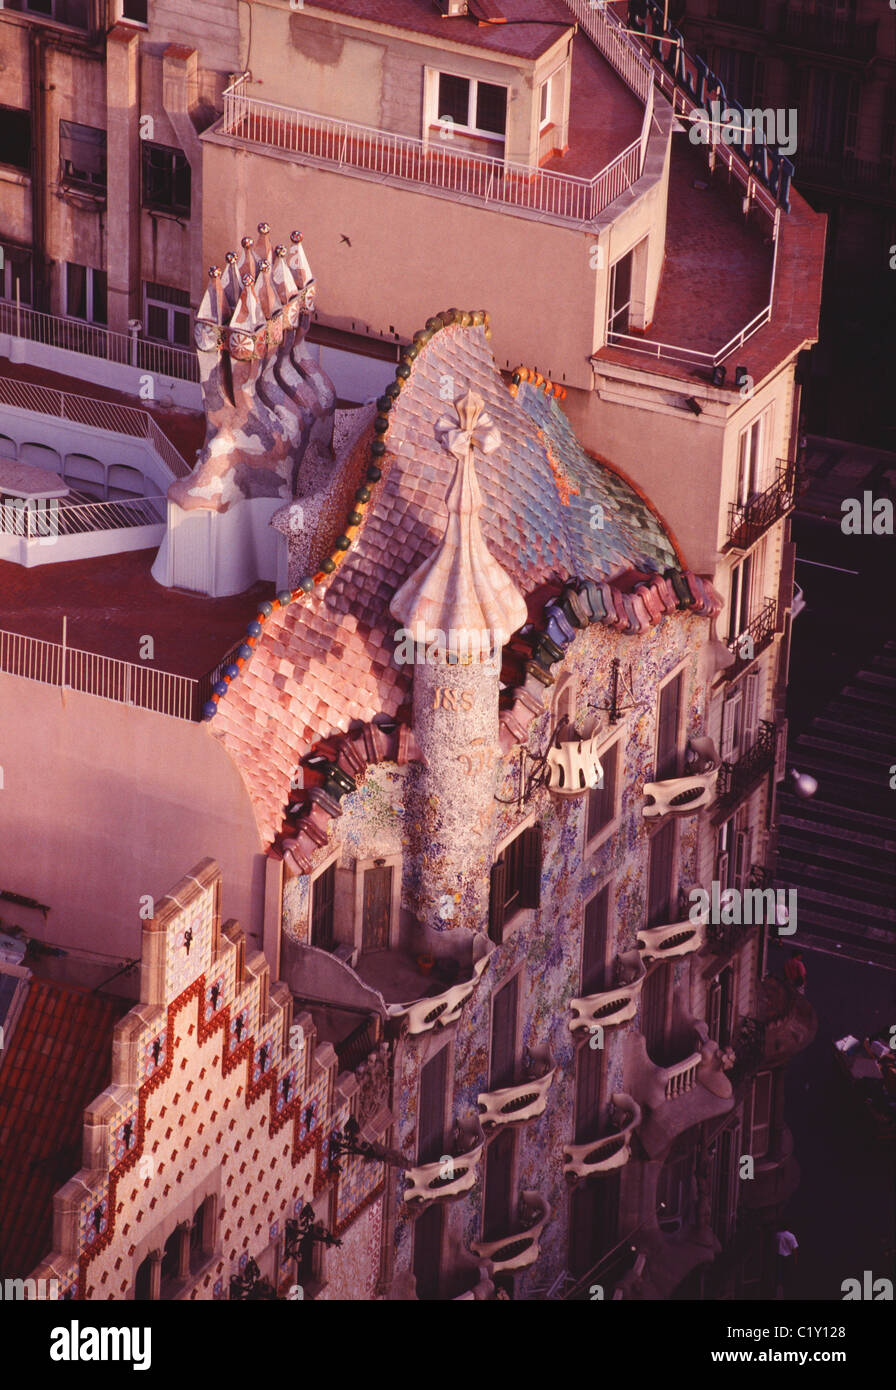 Aerial view over Casa Batlló in Barcelona - Stock Image